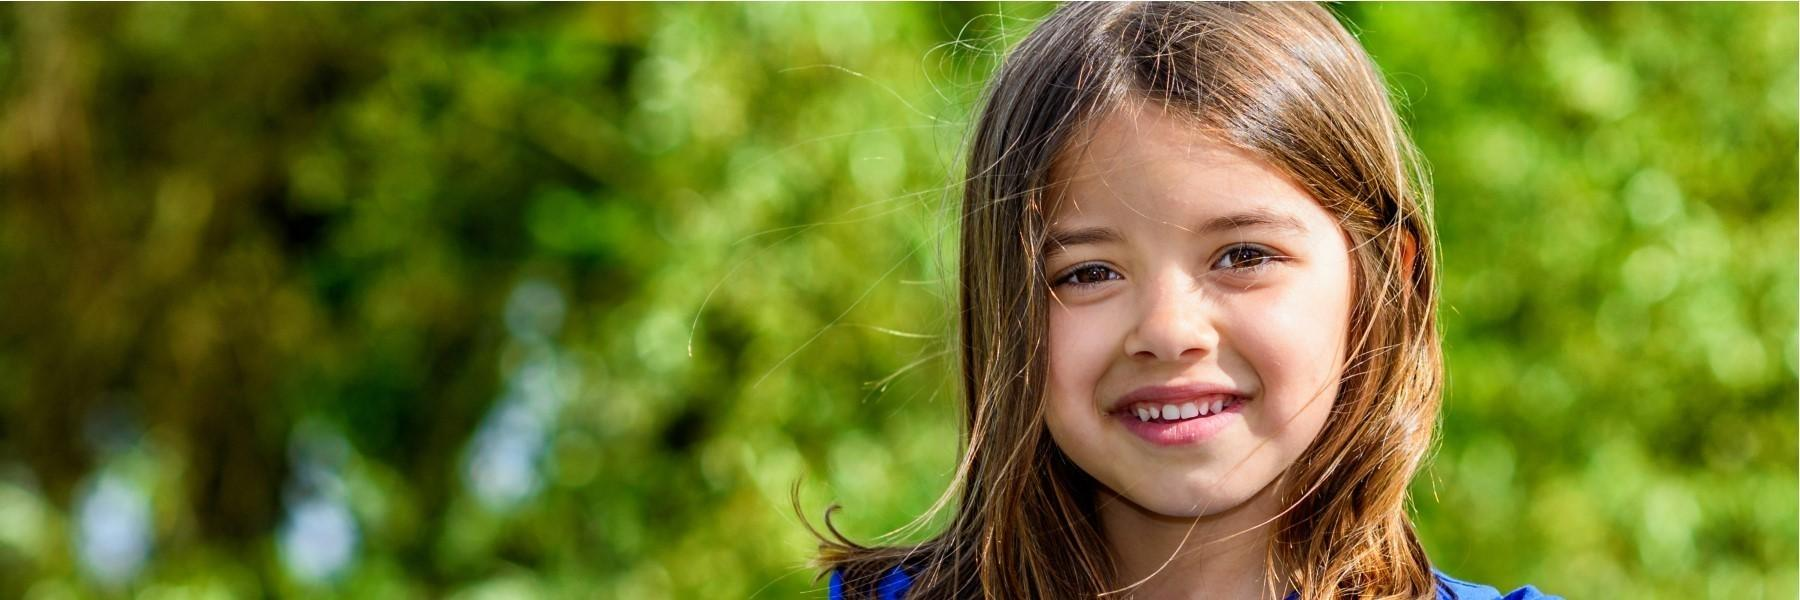 Pediatric Dentistry | Dentist